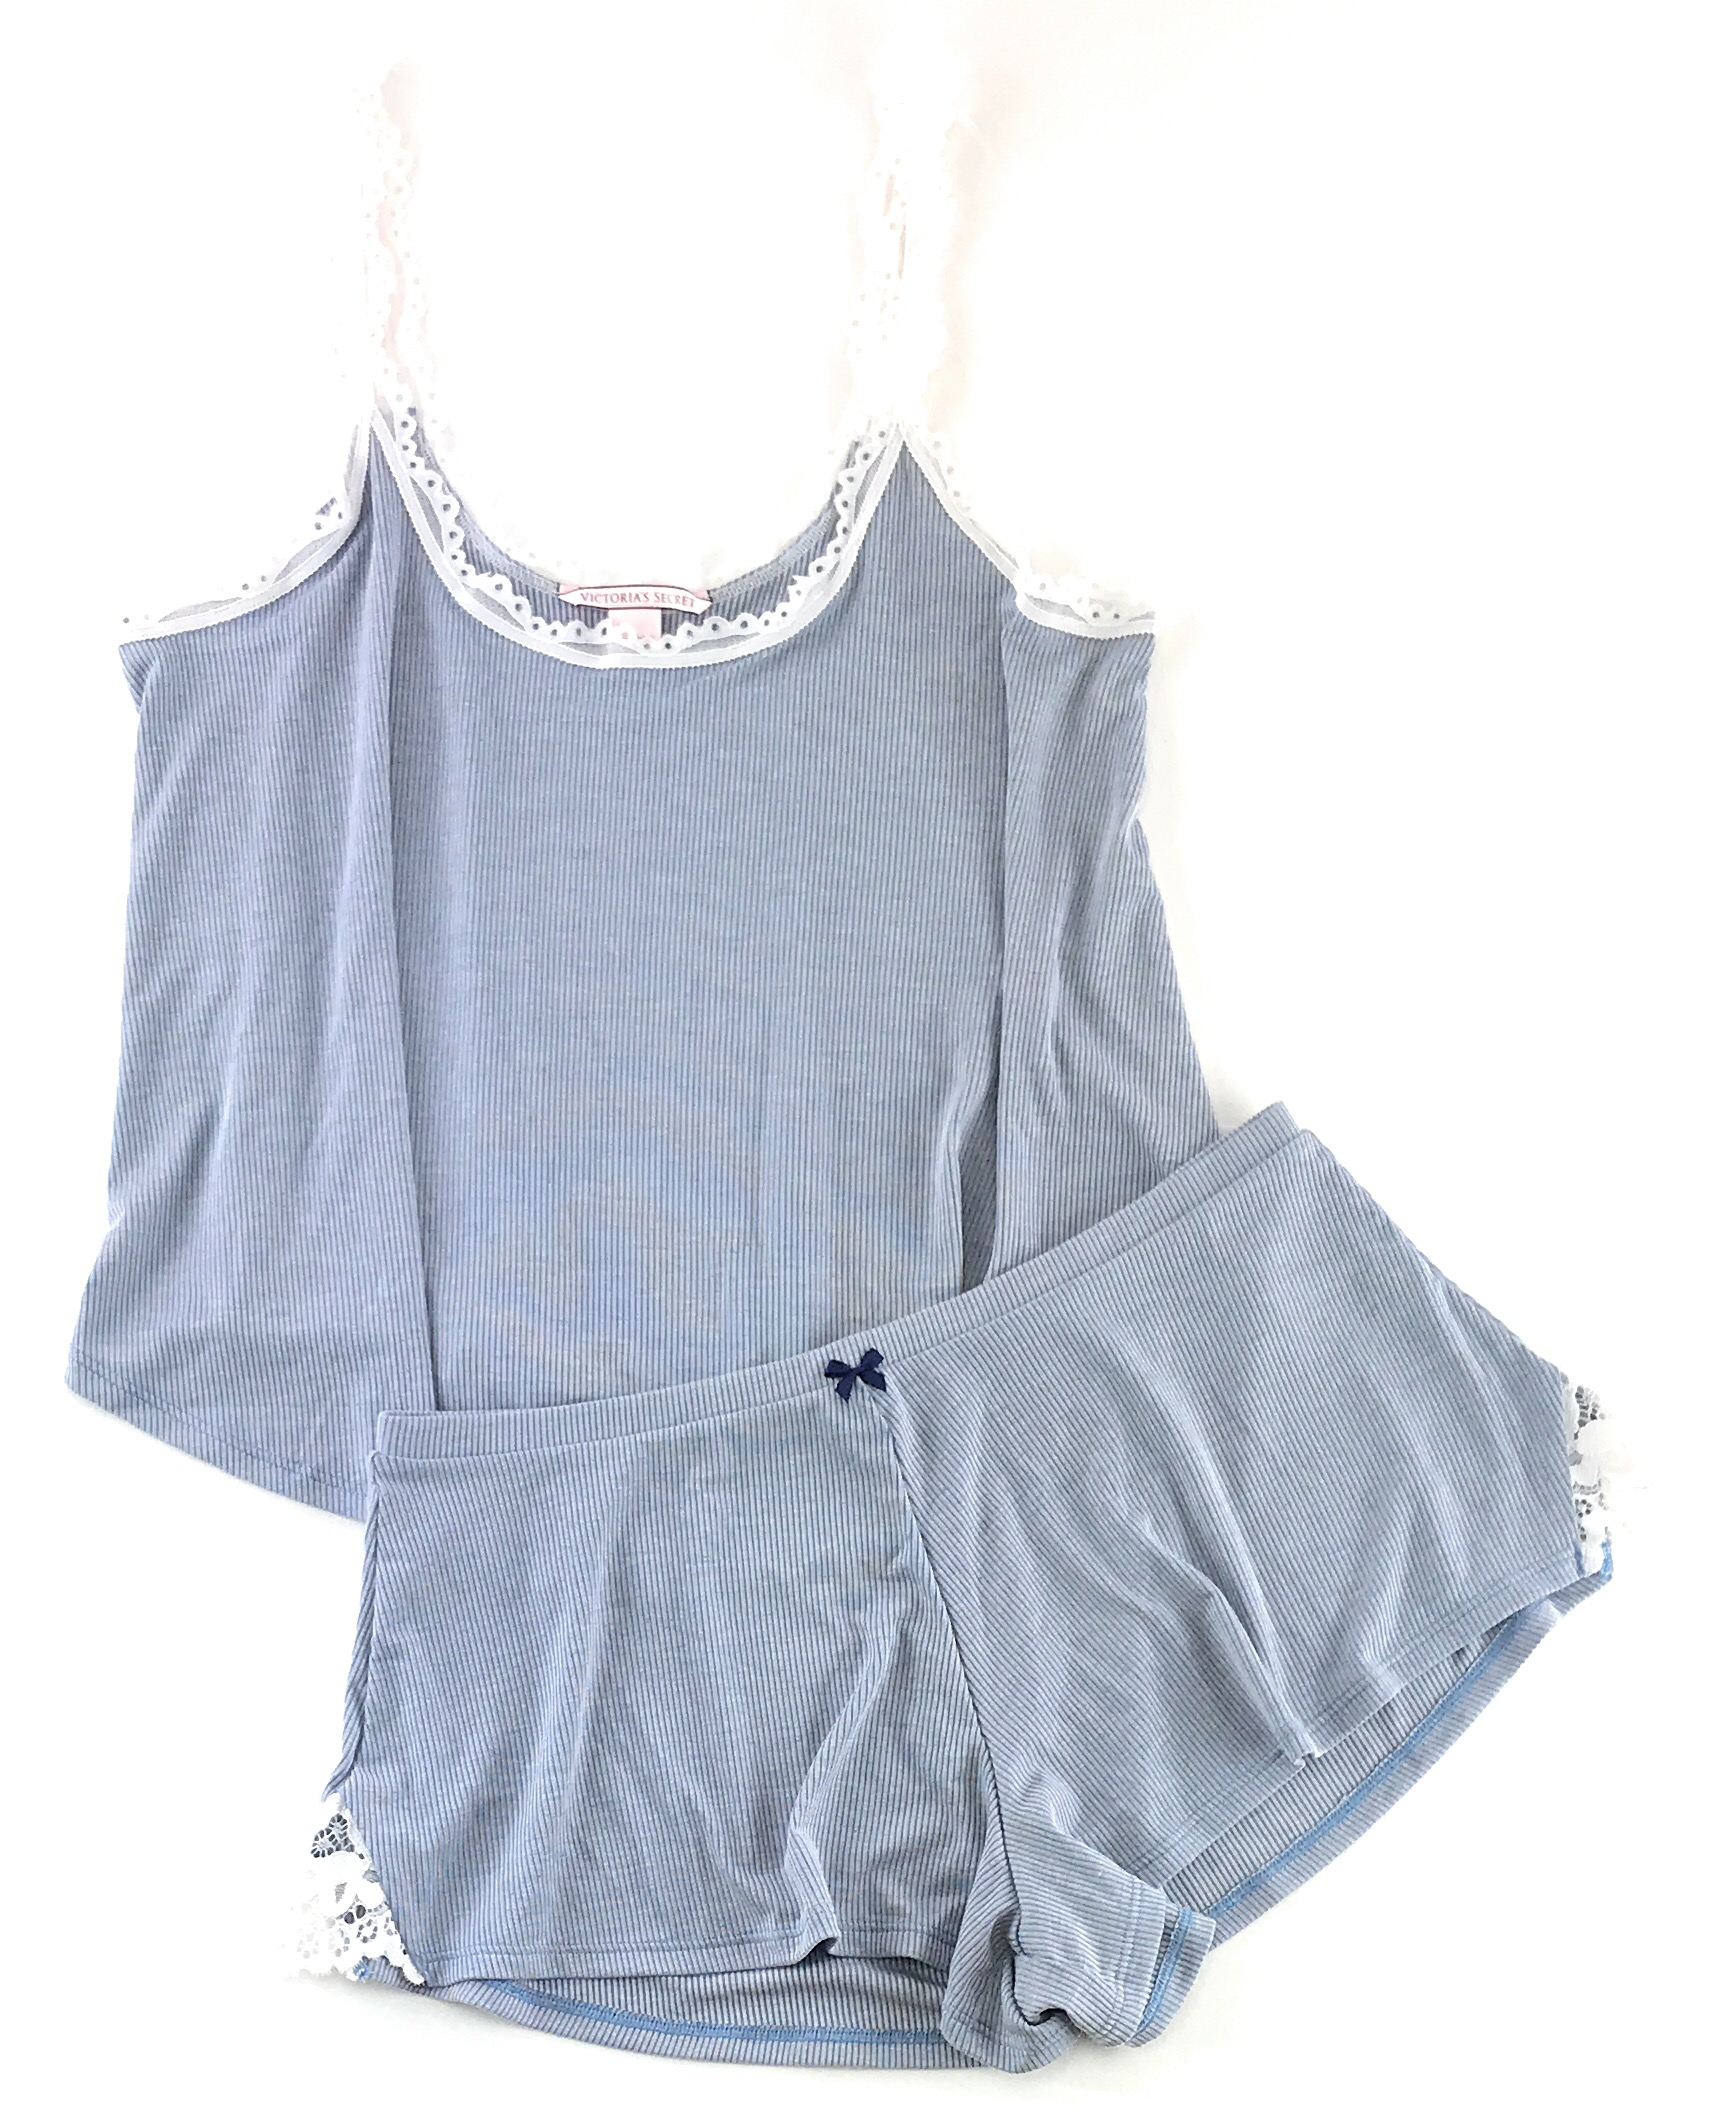 aa86fcf0761794 Victoria s Secret Pajamas Set PJs 2 Piece Ribbed Sleep Cami Tank and Shorts